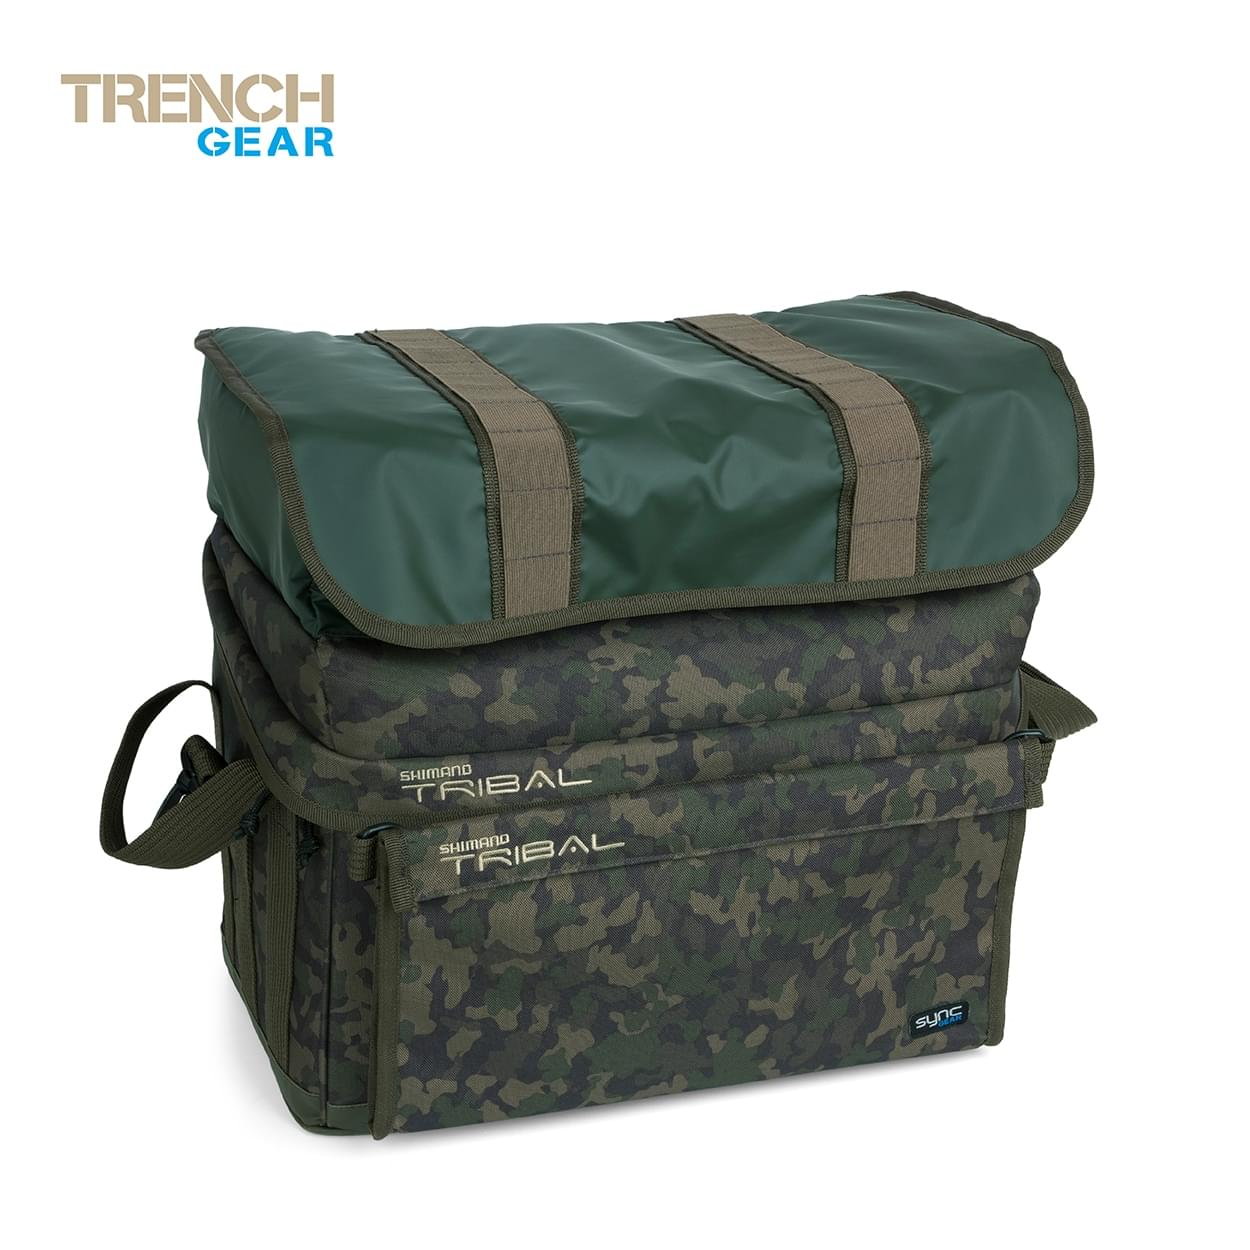 Shimano Trench Gear Carryall